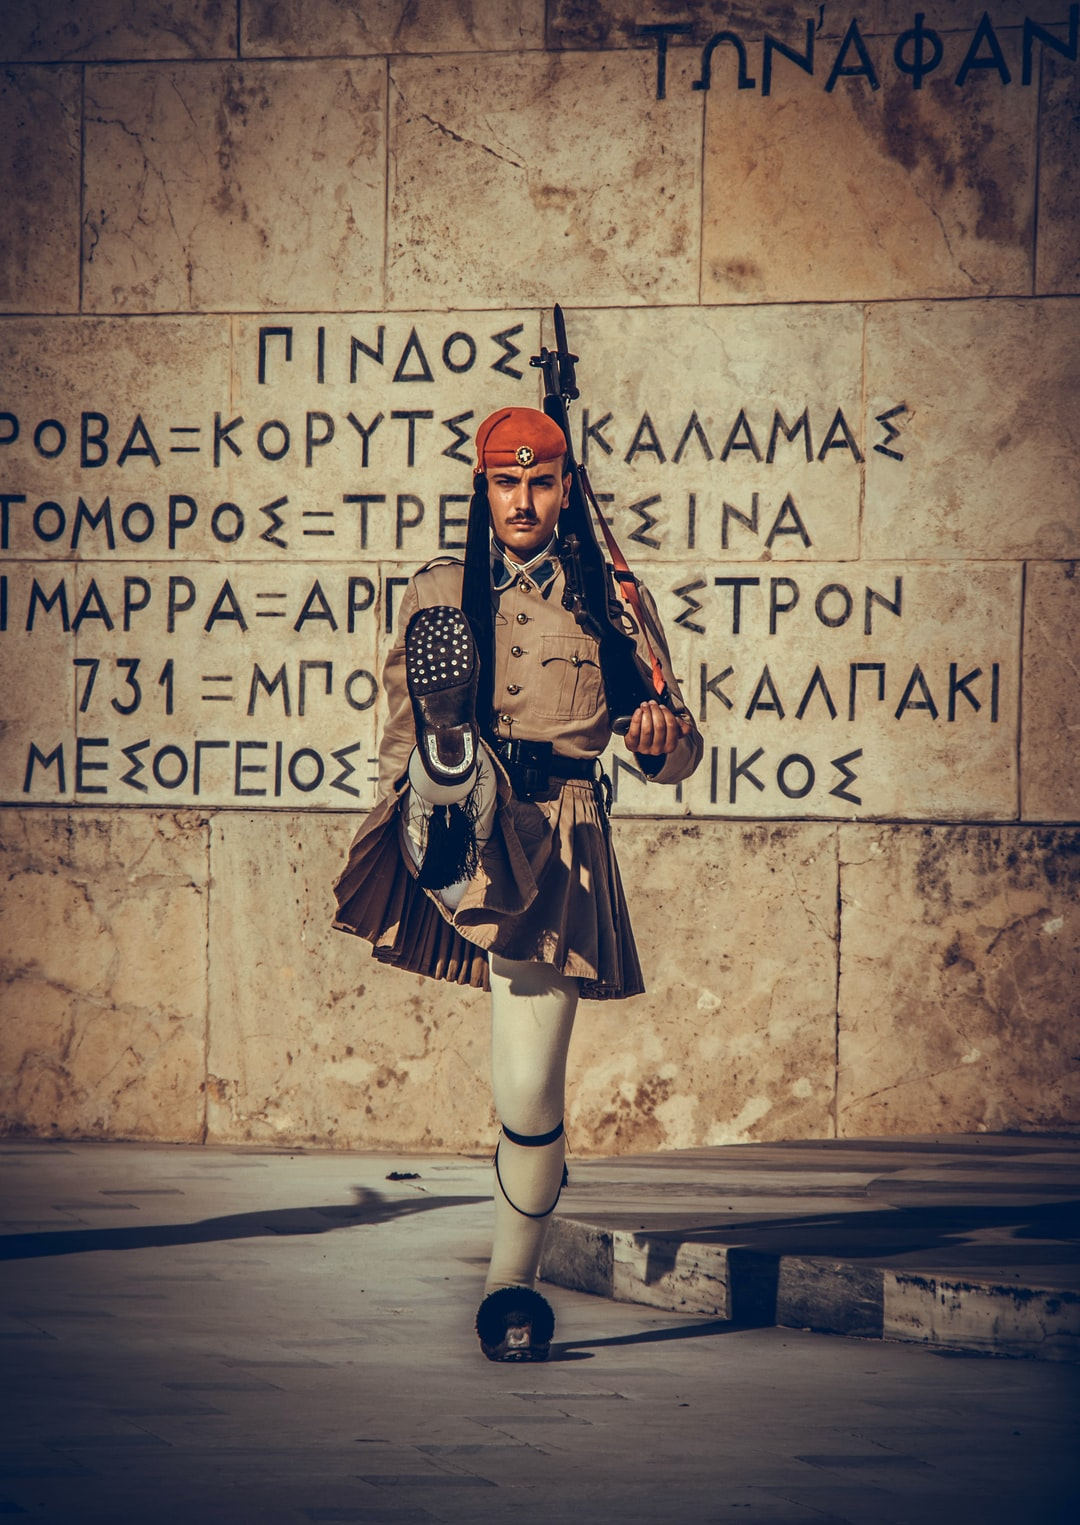 The Evzones or Evzonoi, is the name of several historical elite light infantry and mountain units of the Greek Army. Today, it refers to the members of the Presidential Guard, a ceremonial unit that guards the Greek Tomb of the Unknown Soldier and the Presidential Mansion in Athens.